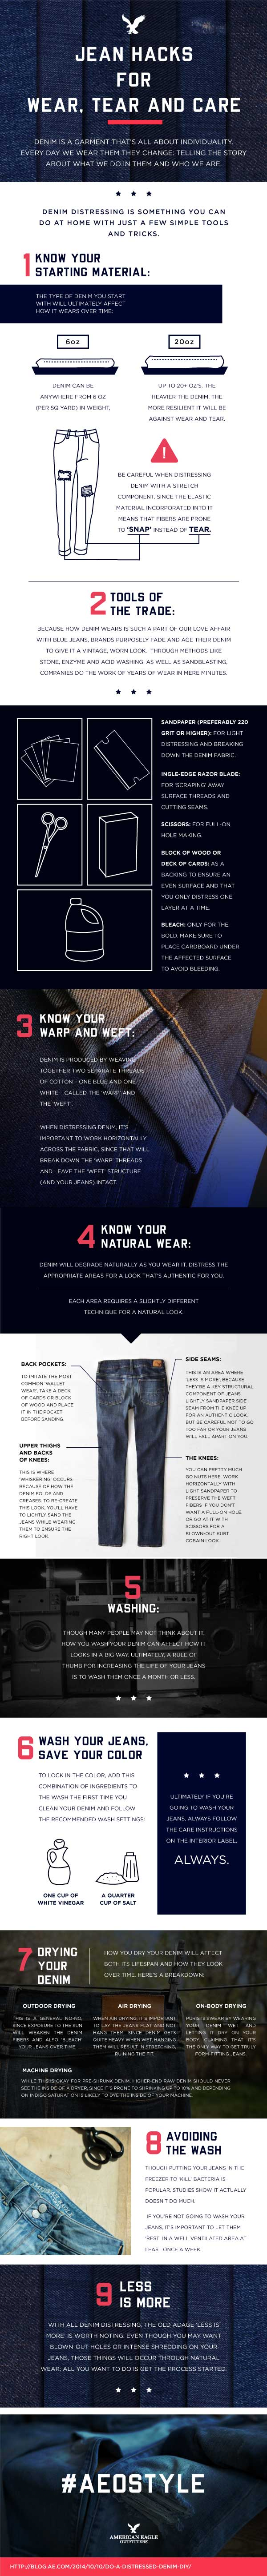 How To Turn Your Old Jeans Into Shorts?